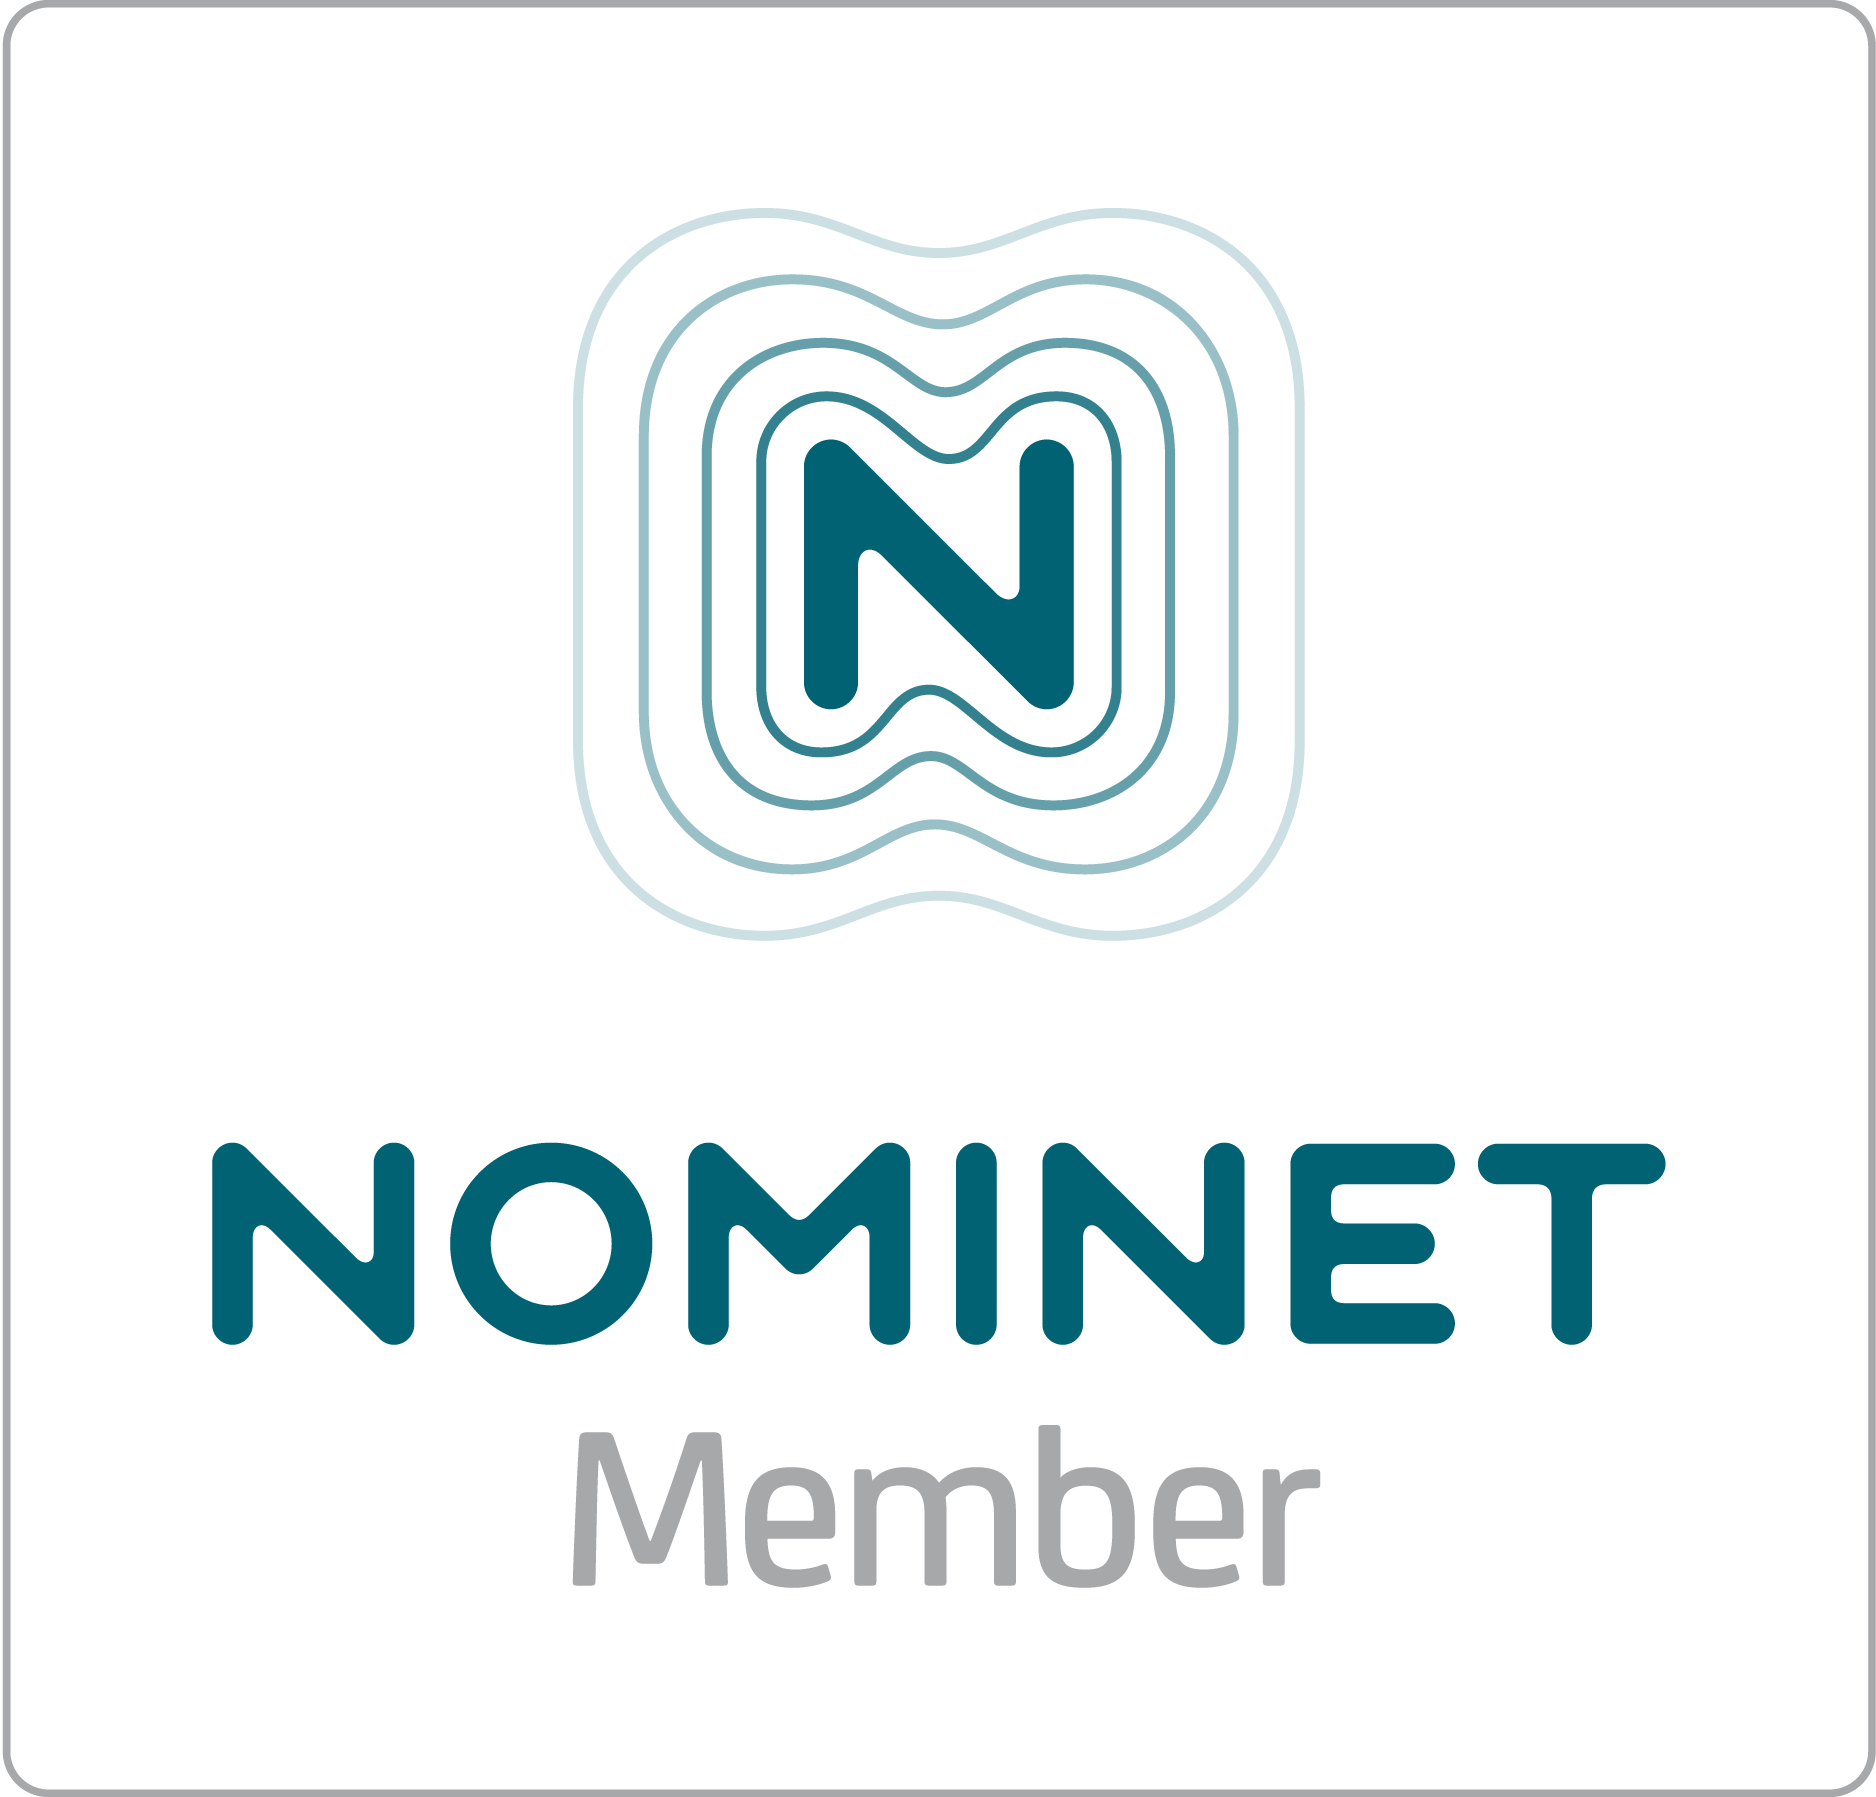 Member of Nominet UK